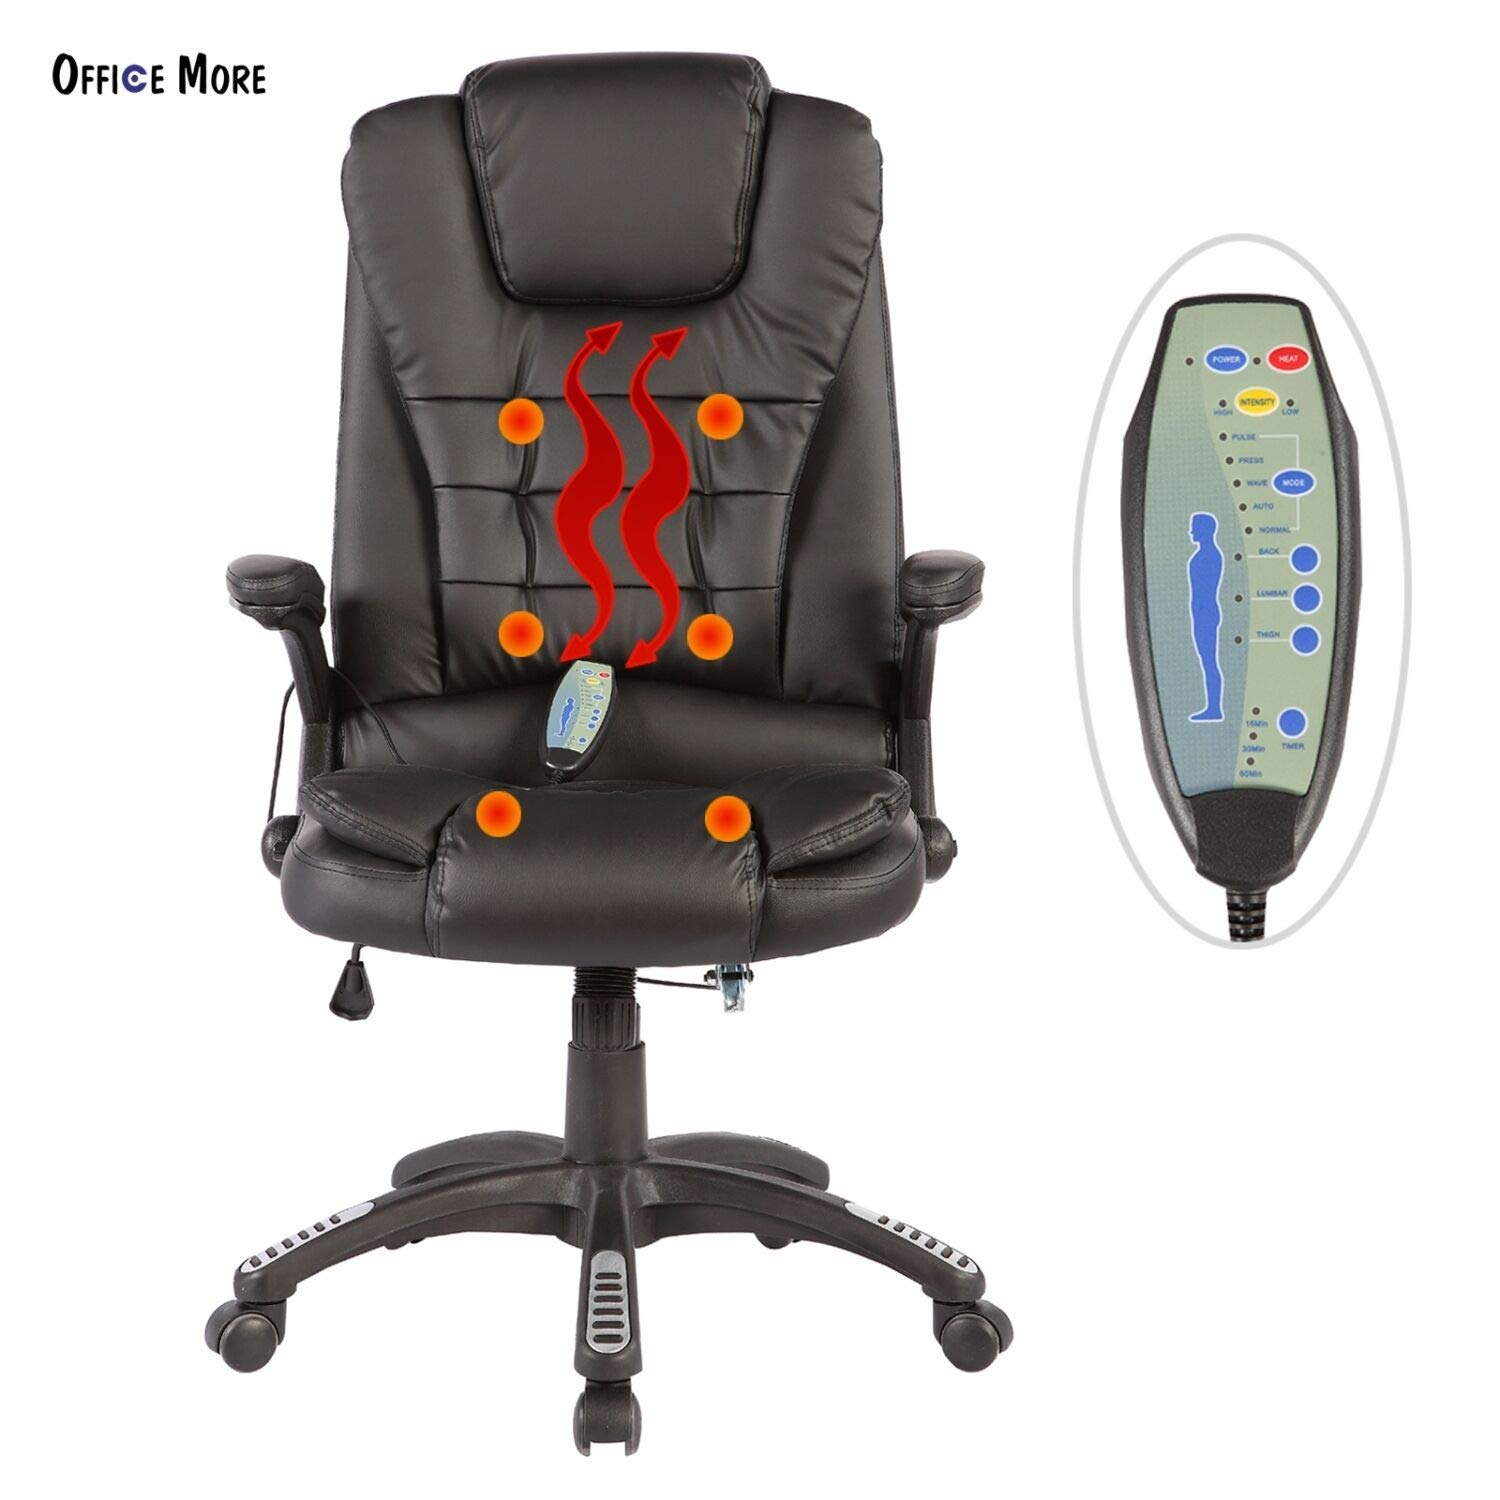 Black Massage Chair Office Swivel Executive Ergonomic Heated Vibrating Leather Chair, Remote Control 6-Point Massage, Adjustable Seat Height & Position by Taltintoo20 (Image #1)